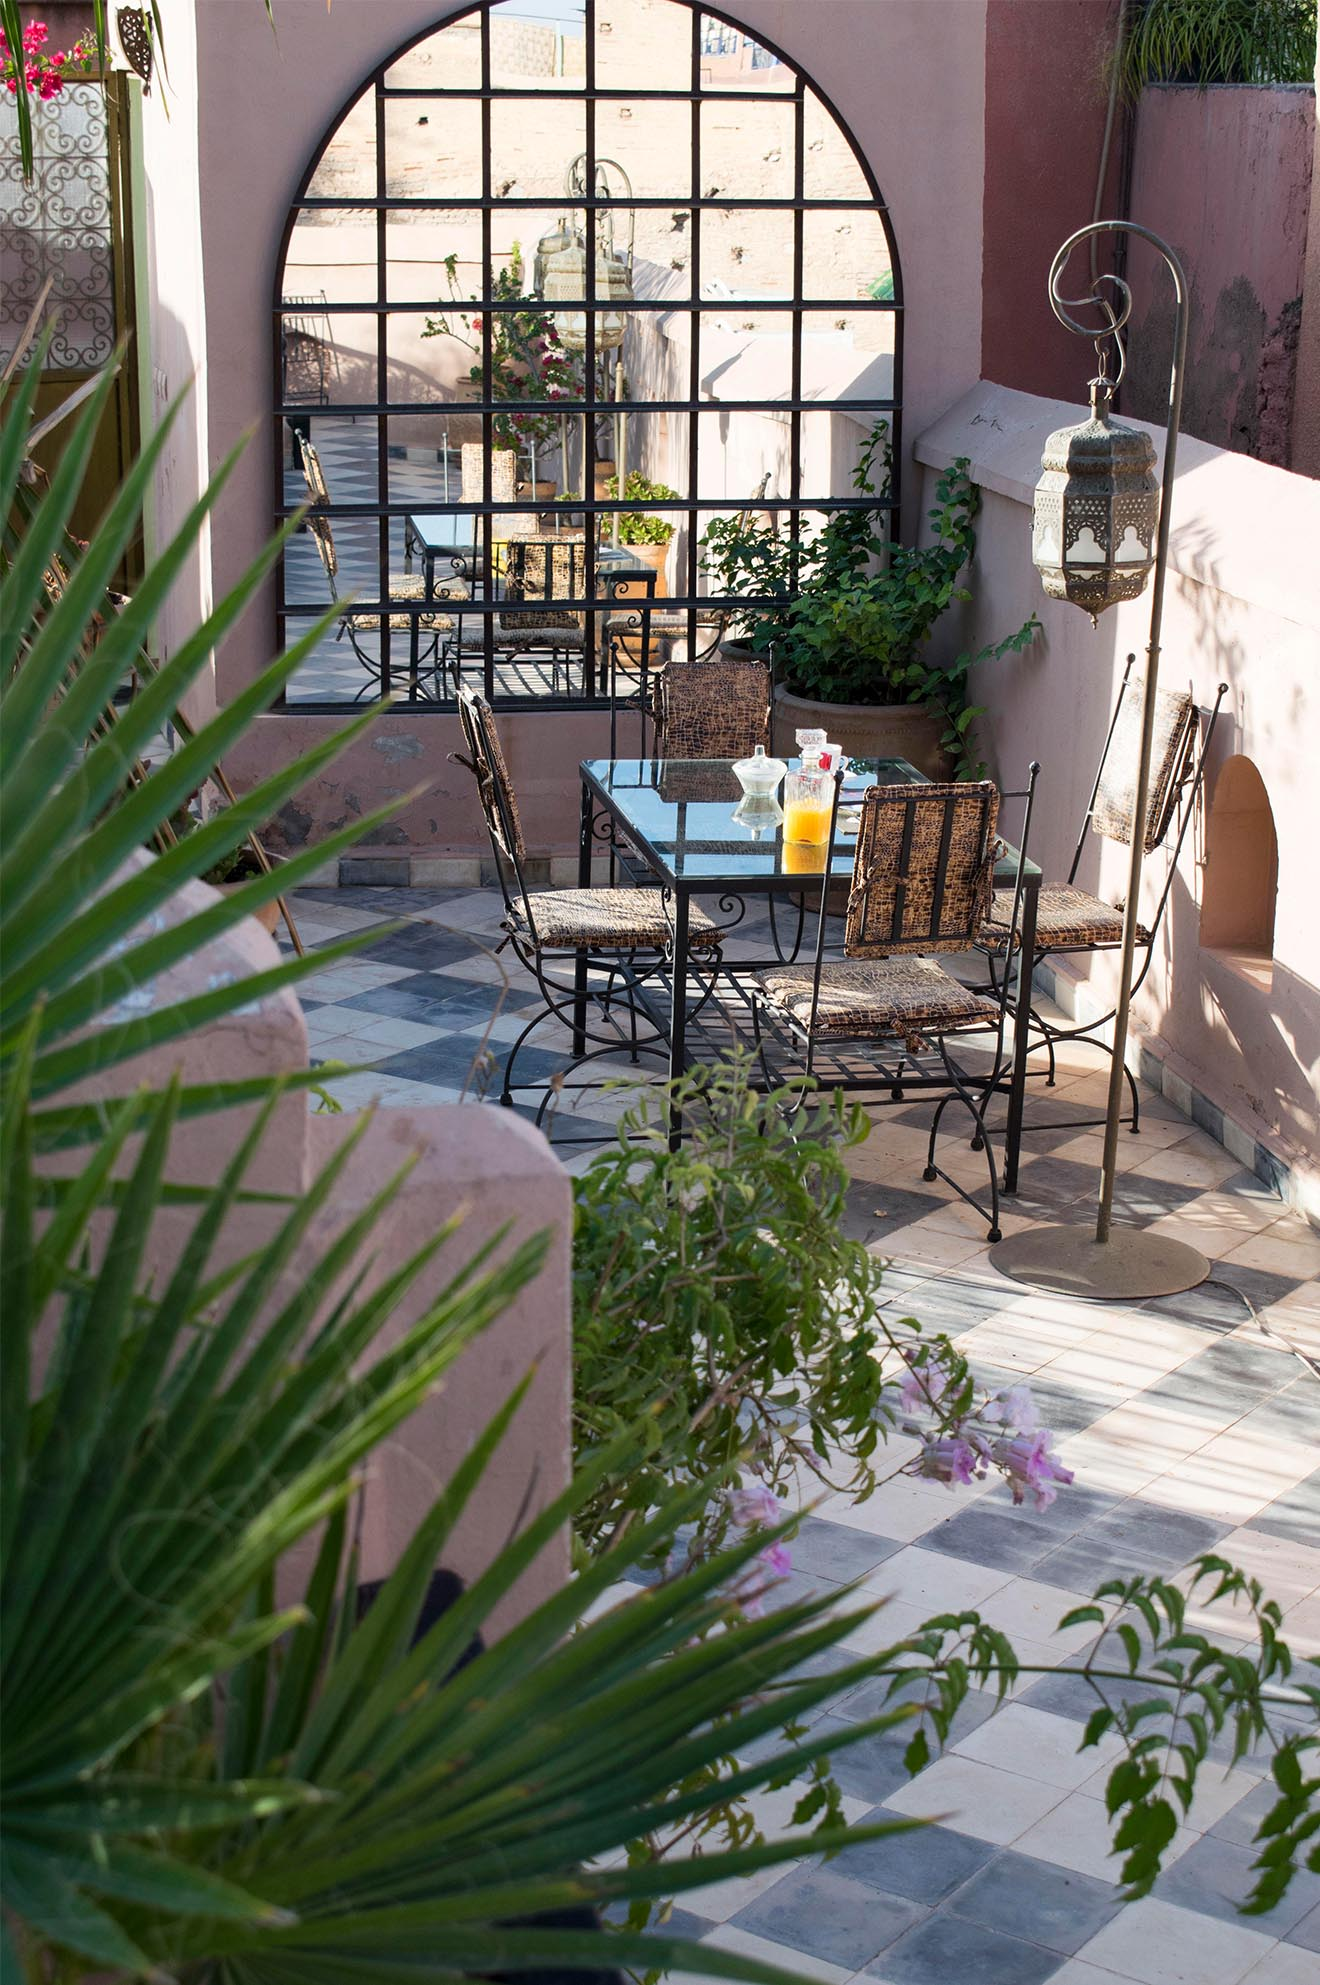 Breakfast in the roof at Dar Jaguar boutique hotel Marrakech